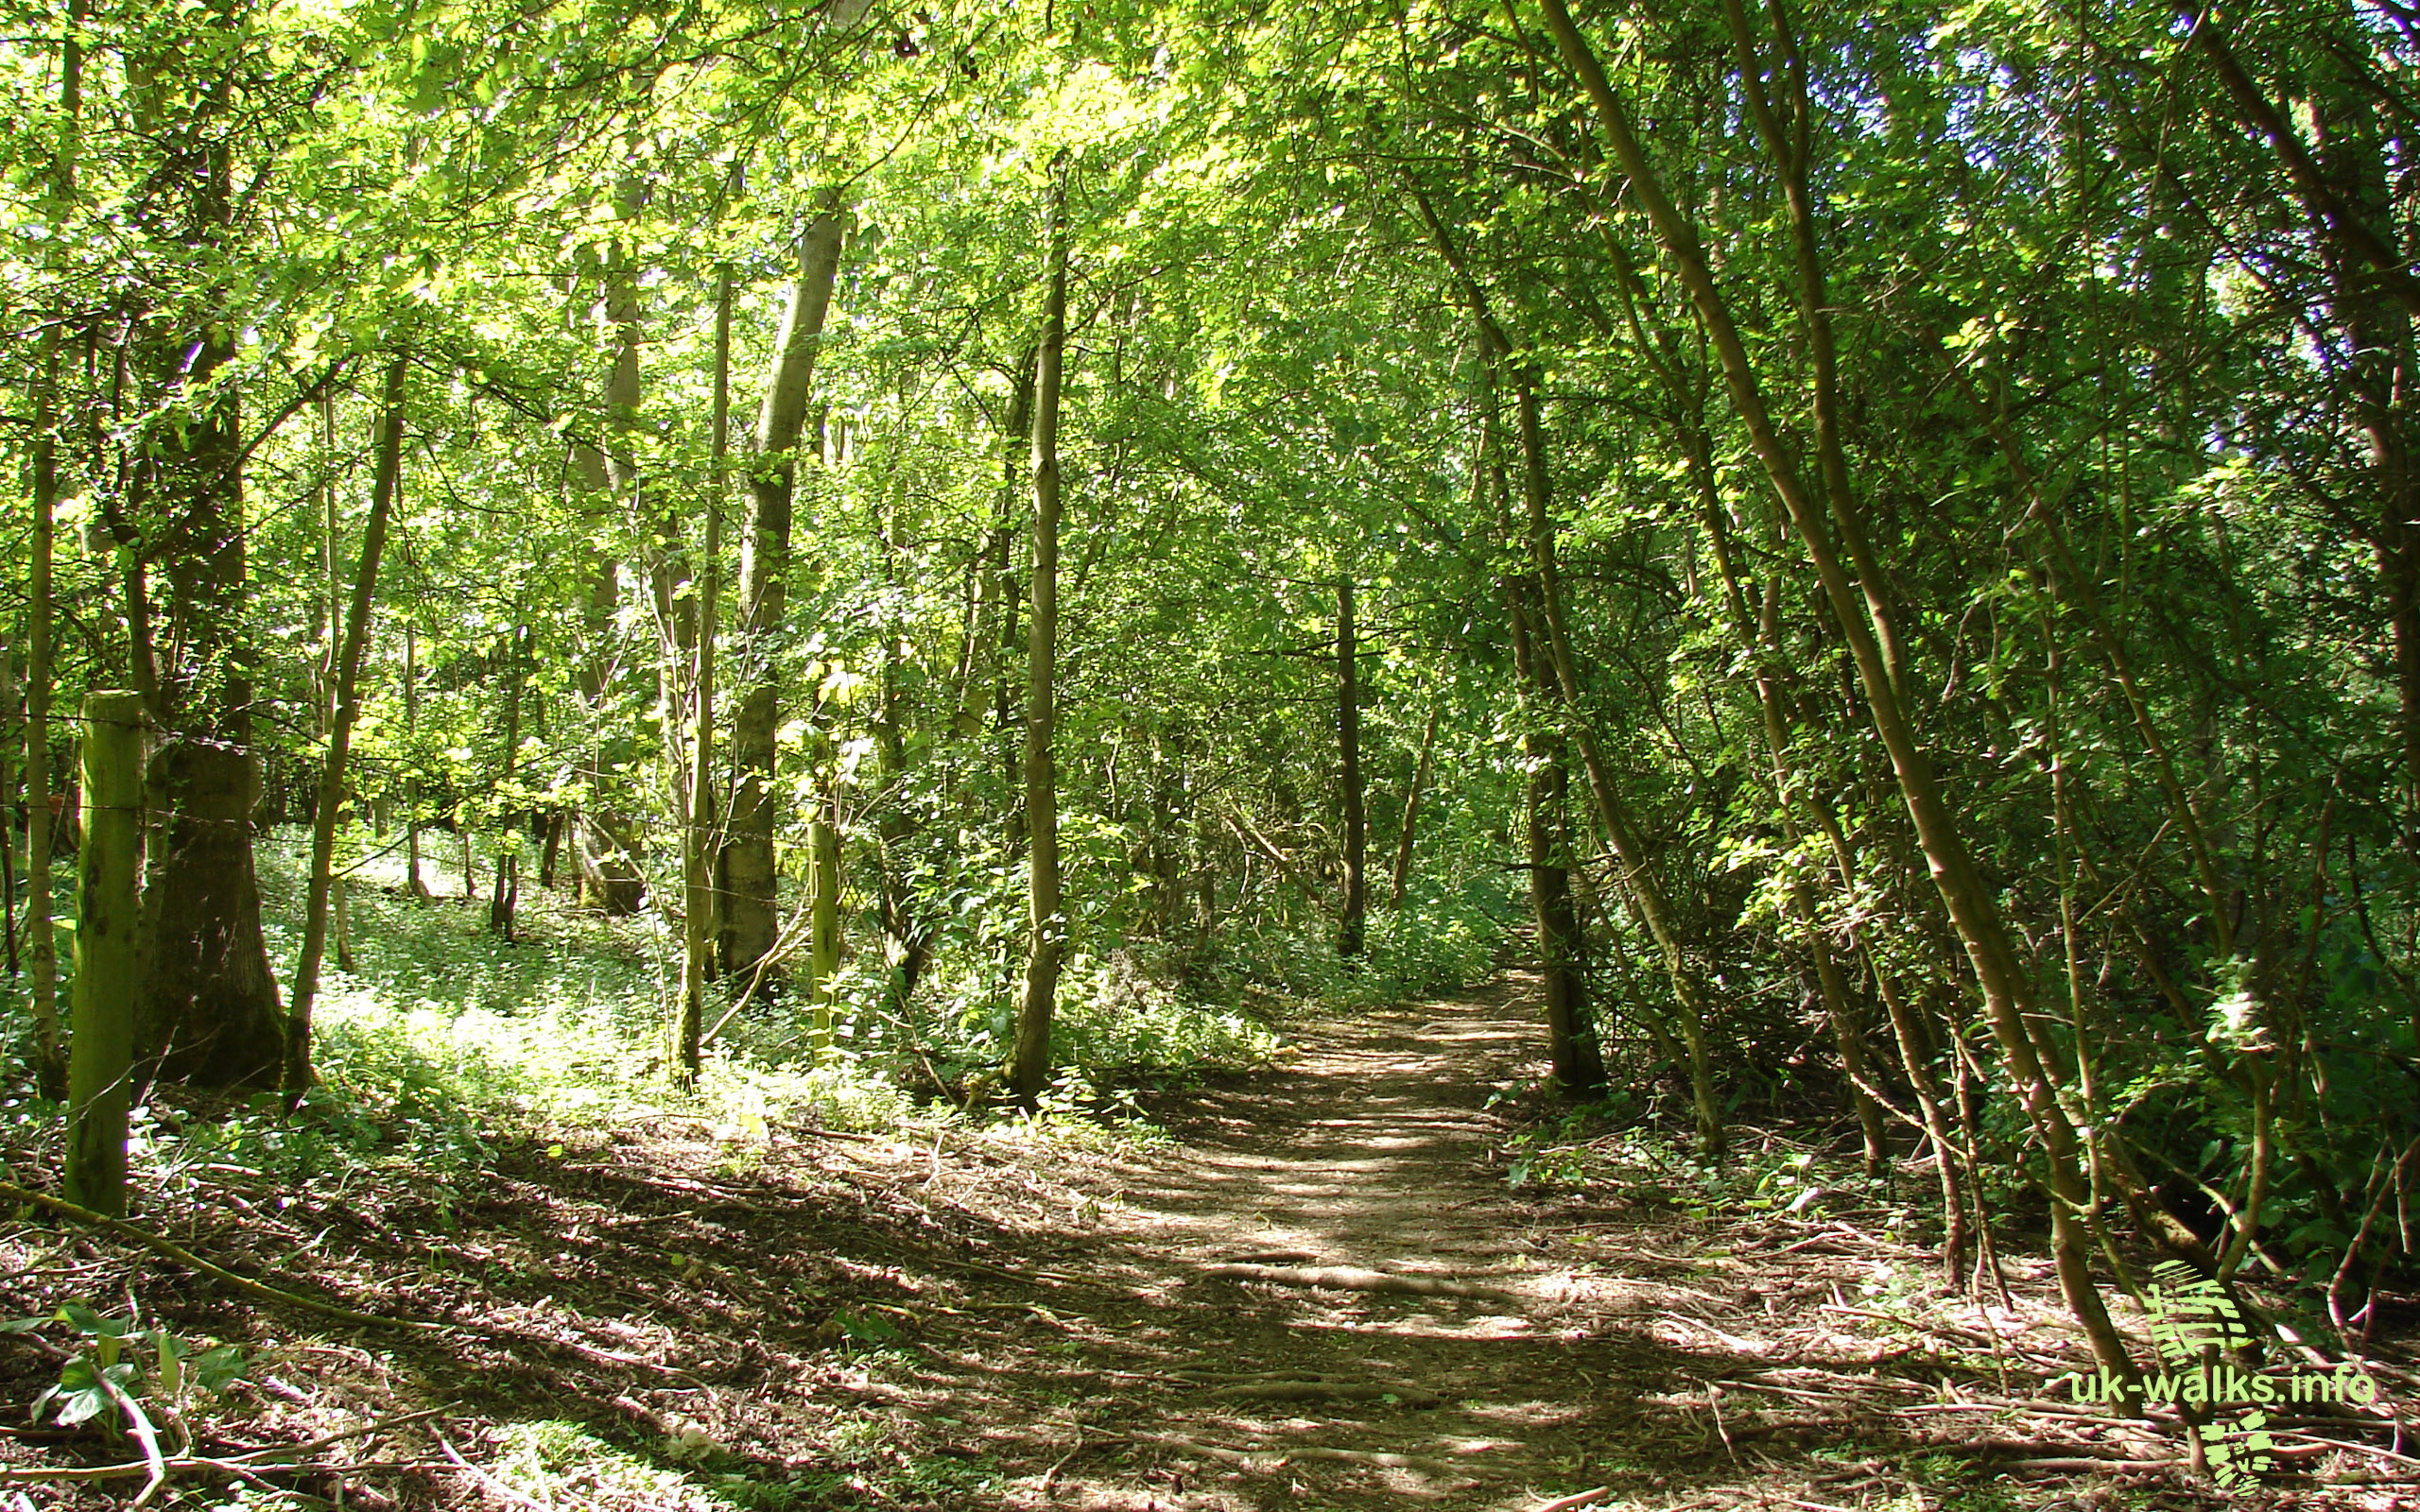 woodland by rutland water in may 2011